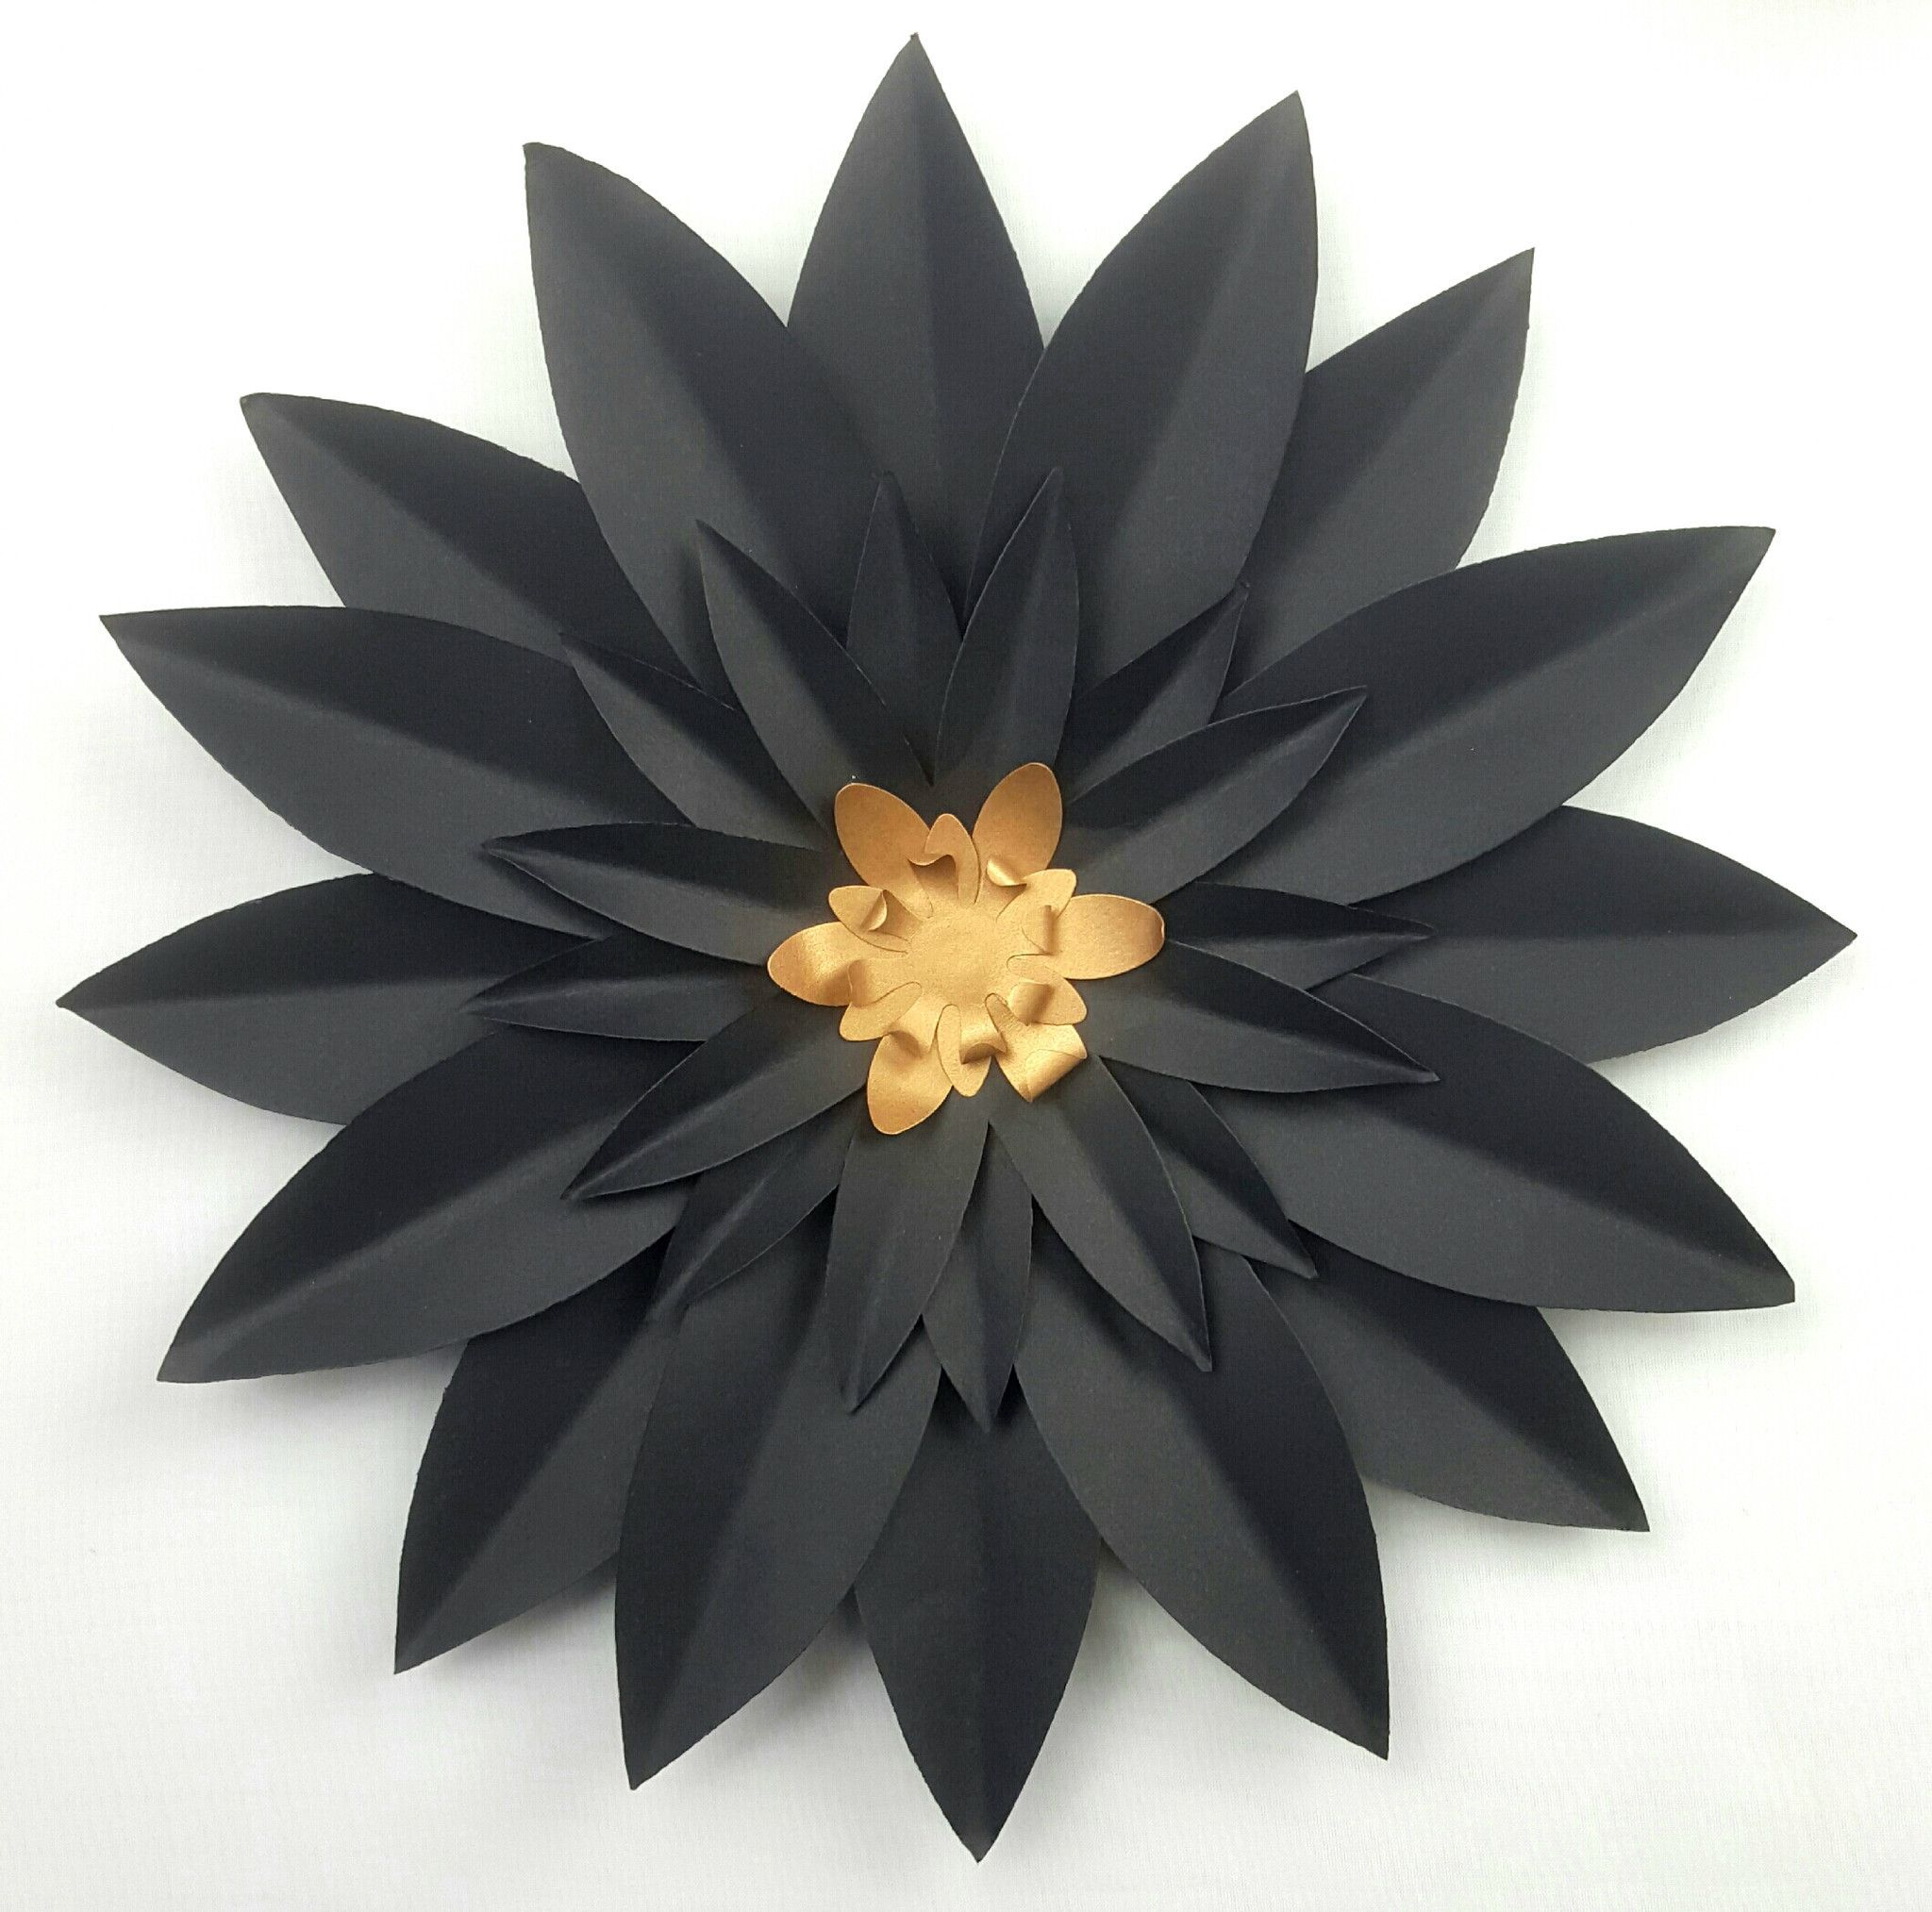 Discounted handmade giant paper flower 30cm paper crafts discounted handmade giant paper flower 30cm mightylinksfo